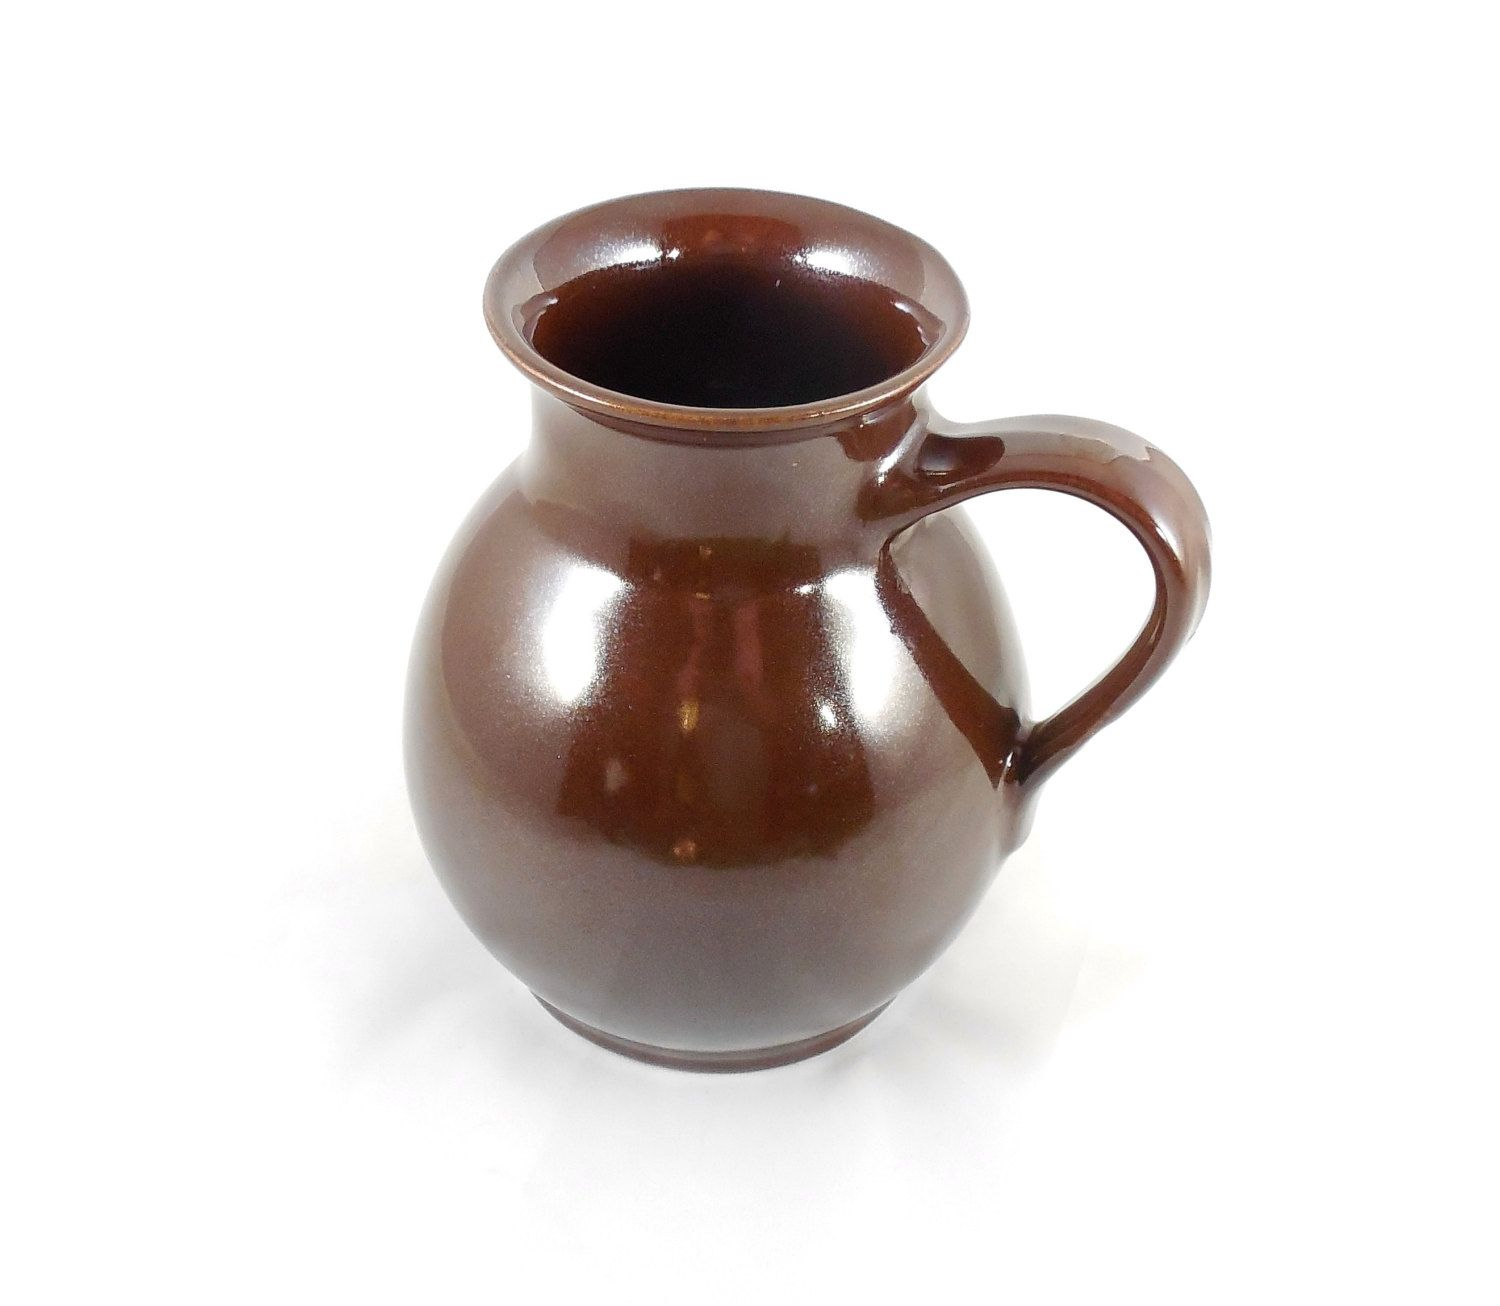 """Vintage Brown Pottery Pitcher 6 1/2"""", Ceramic Brown Glazed Milk Jug, Collector Pottery Jug with Handle, Studio Pottery Jug by ShellyisVintage on Etsy"""